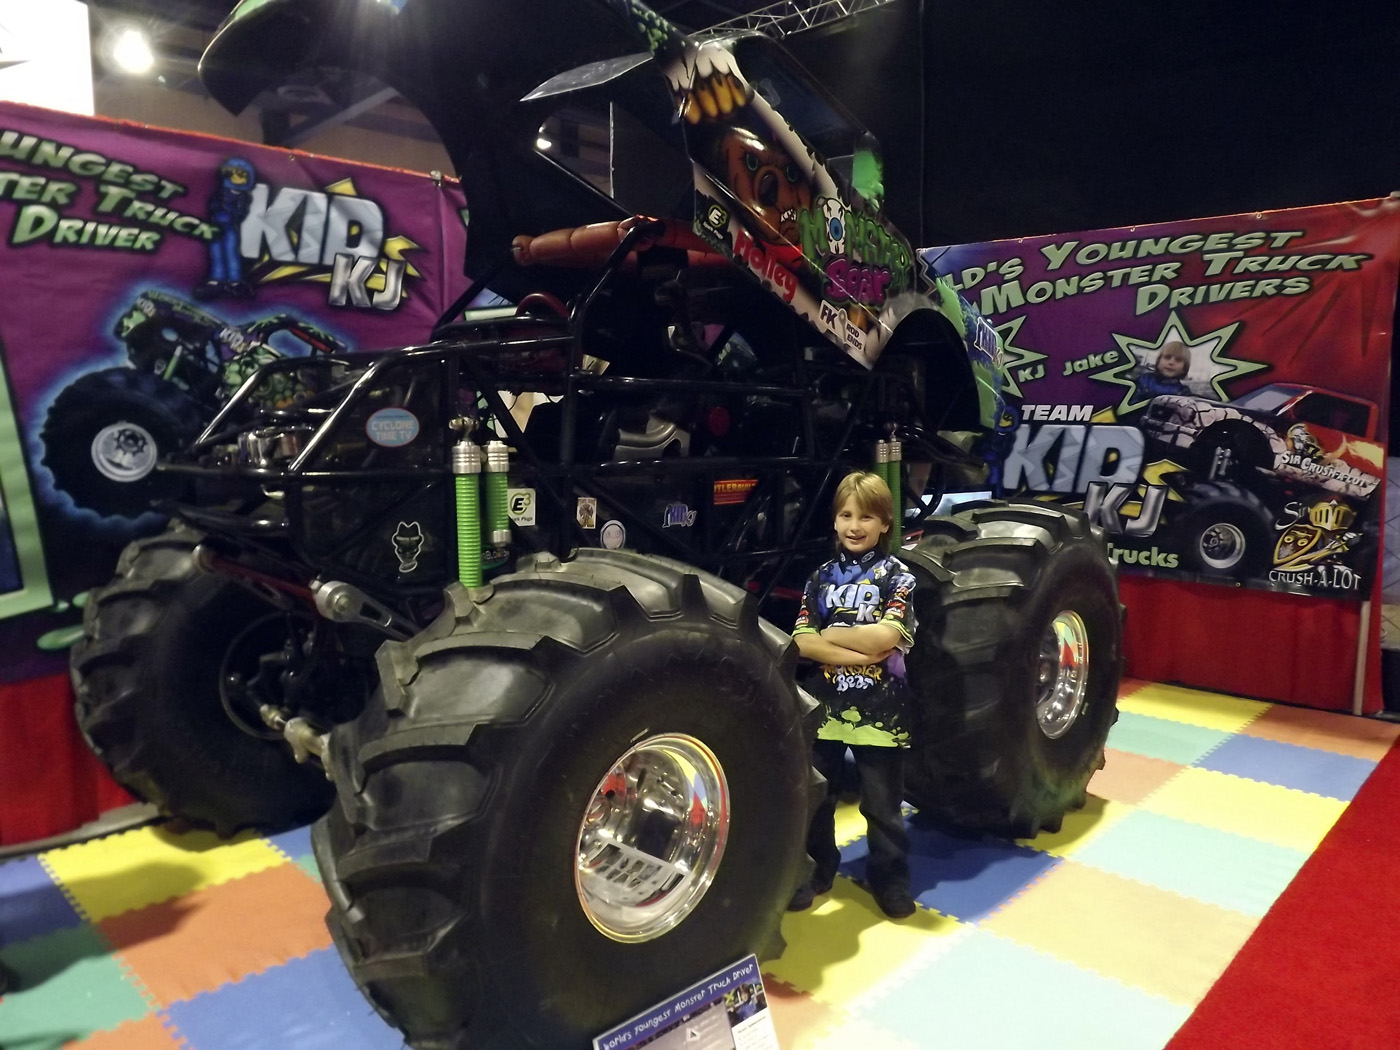 Seattle Djc Com Local Business News And Data Machinery 8 Year Old Kj Drives Monster Trucks Like A Pro